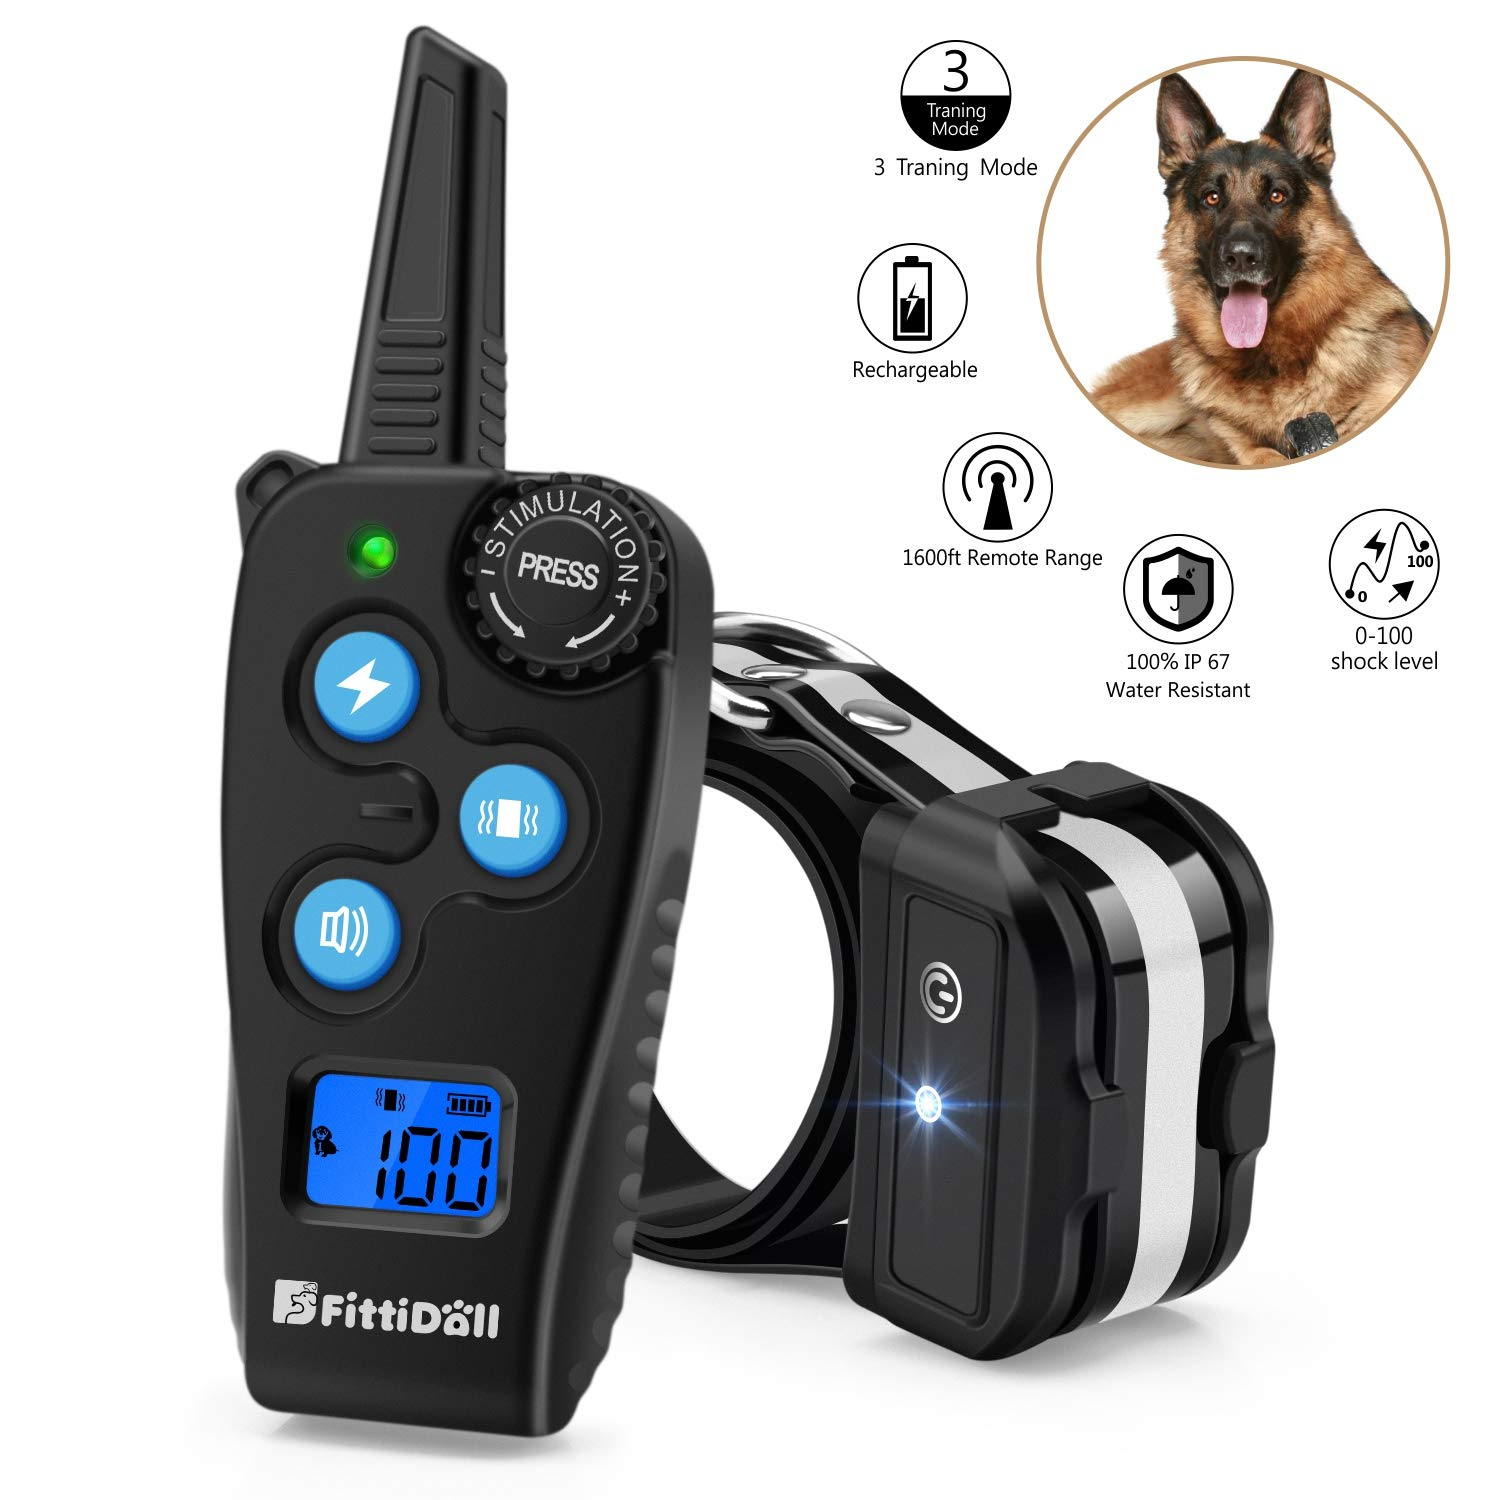 Fittidoll Dog Training Collar, Rechargeable Dog Shock Collar with Beep, Vibration and 1~100 Shock Levels Dog Training Set, 60% Longer Remote Range, 100% Waterproof Training Collar for Dogs Small Mediu by Fittidoll